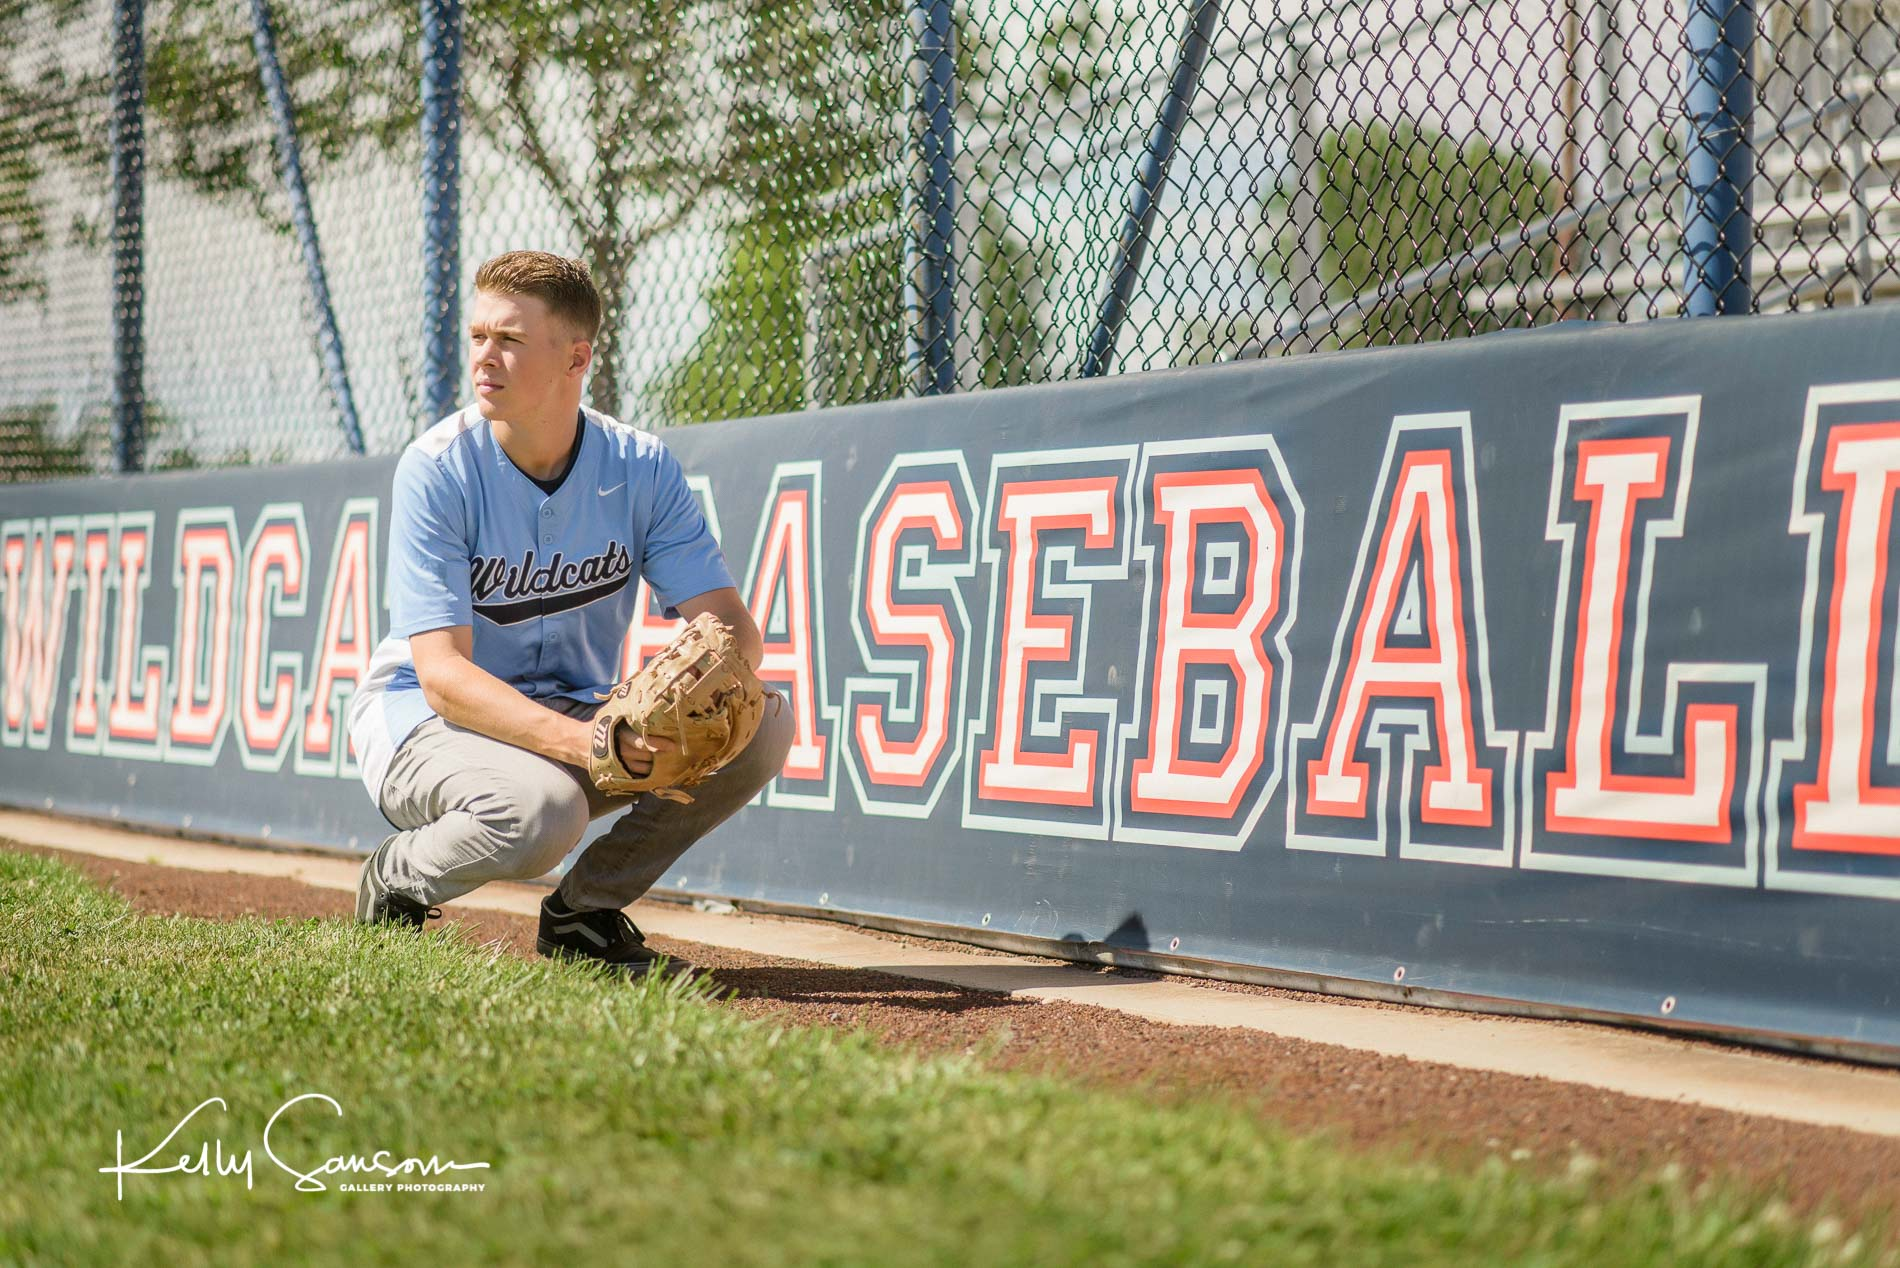 A high school in his baseball uniform kneeling on the field for Bountiful senior photography.